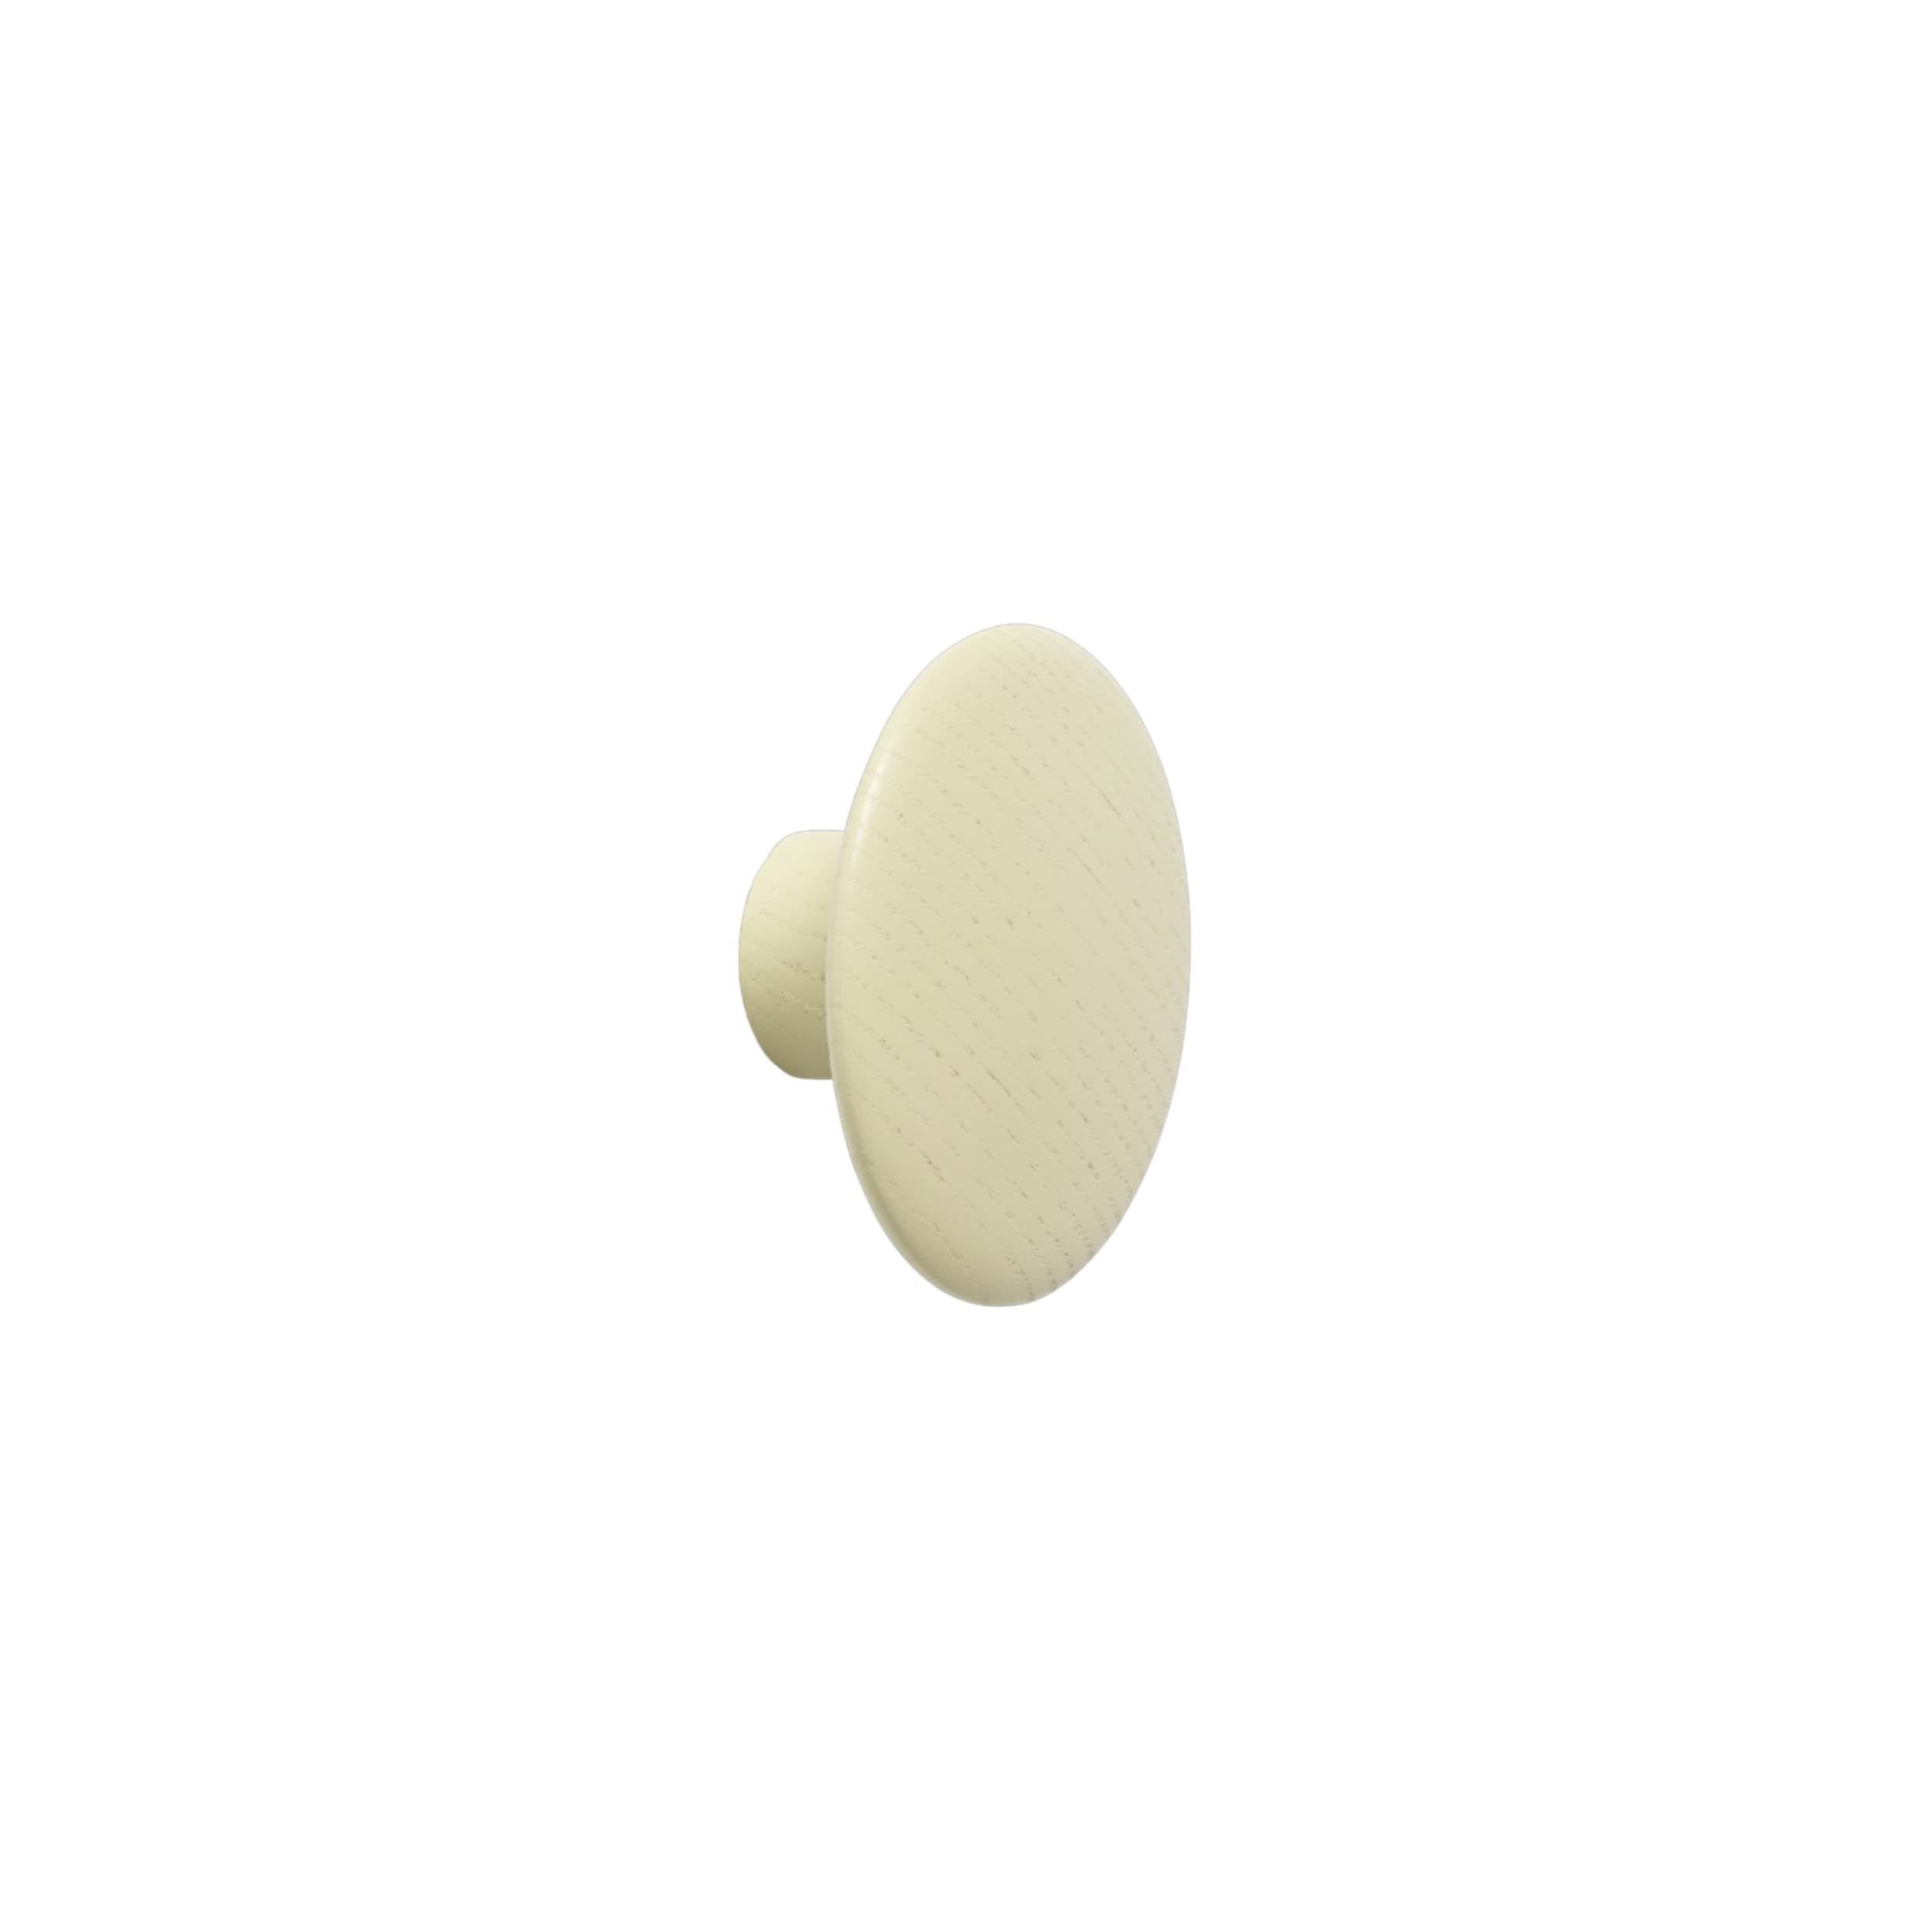 The Dots Wall Hooks: Beige-Green + Extra Small